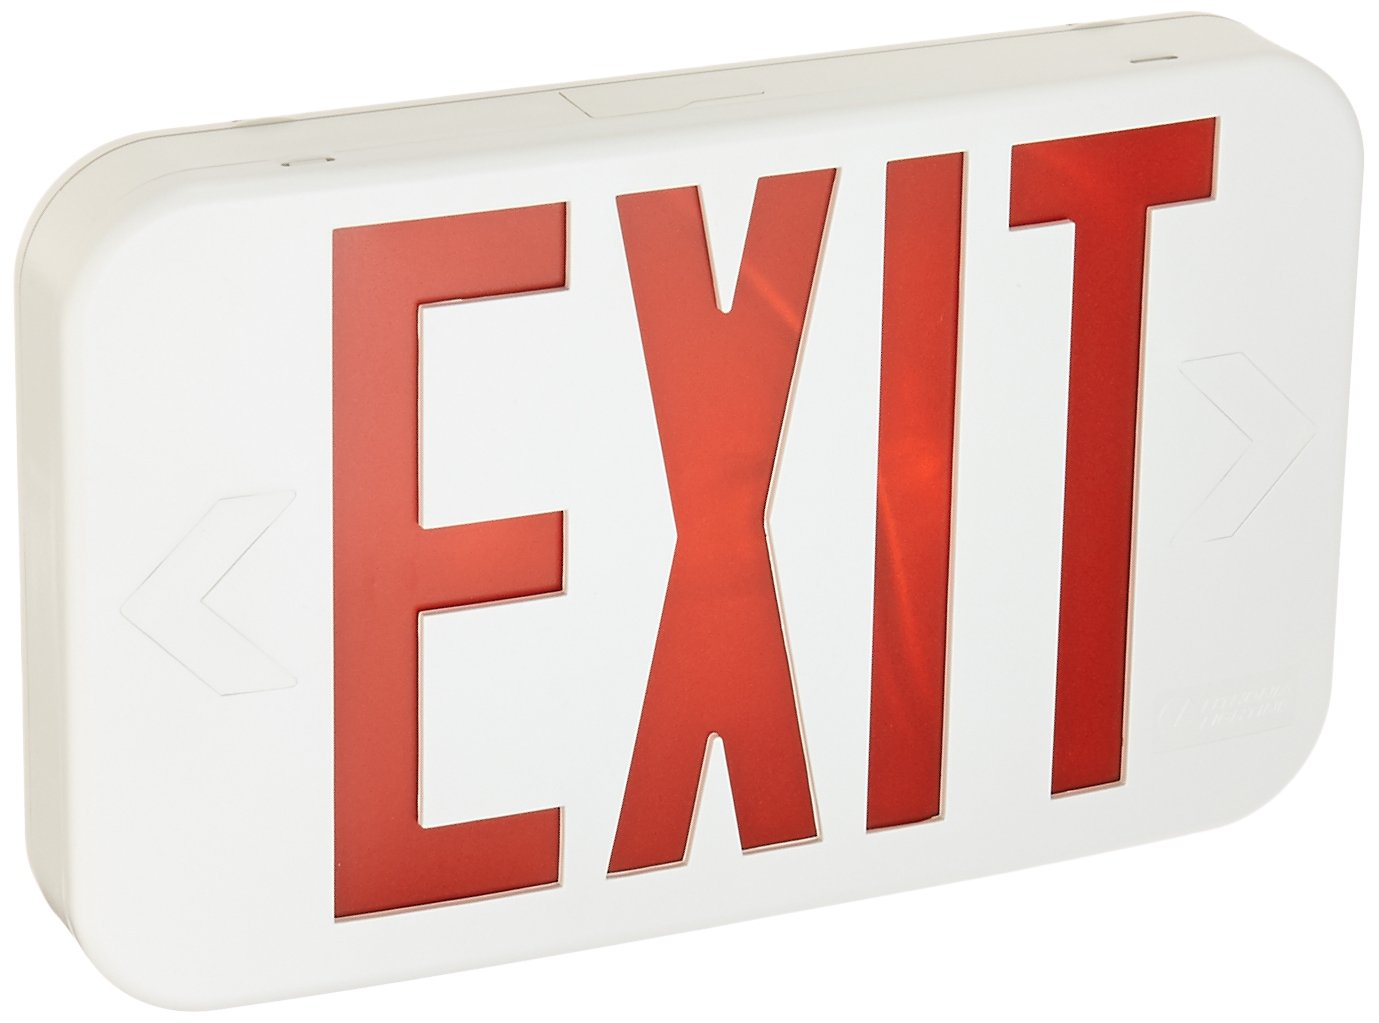 Lithonia Lighting EXR LED EL M6 Contractor Select Red Thermoplastic LED Emergency Exit Sign with Backup Battery